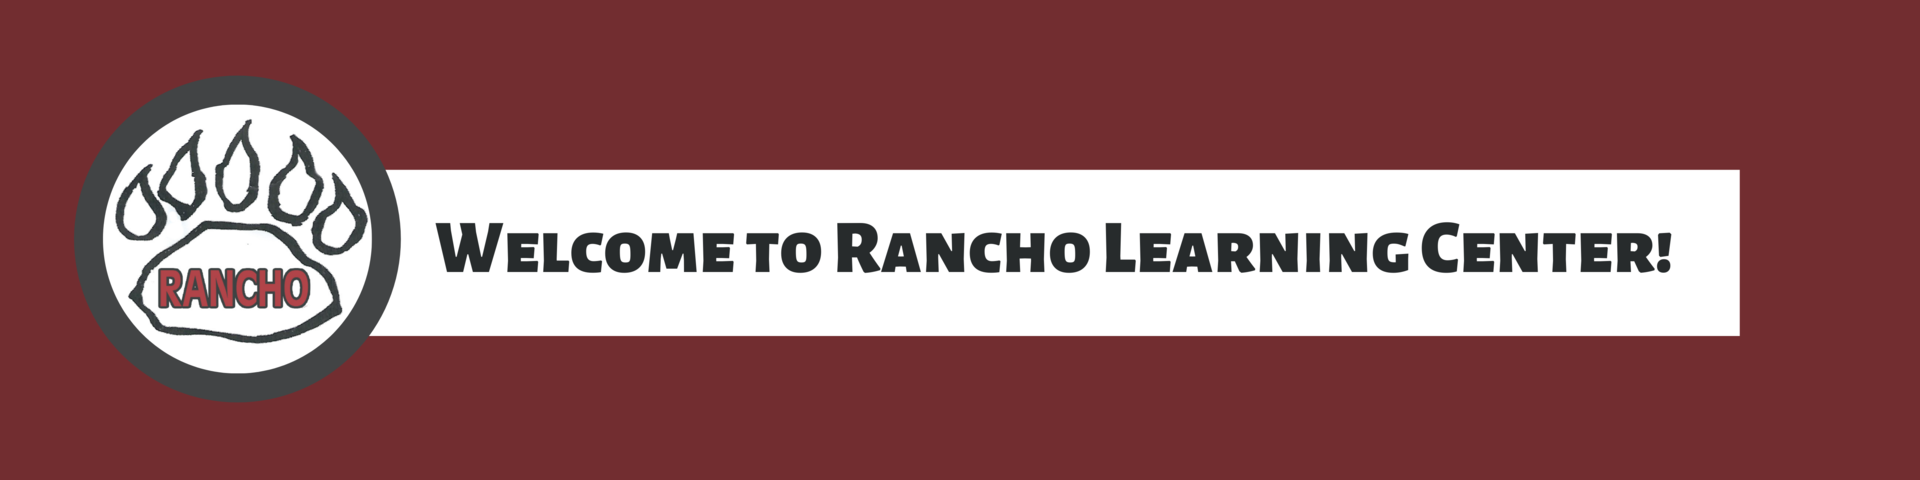 Rancho Welcome